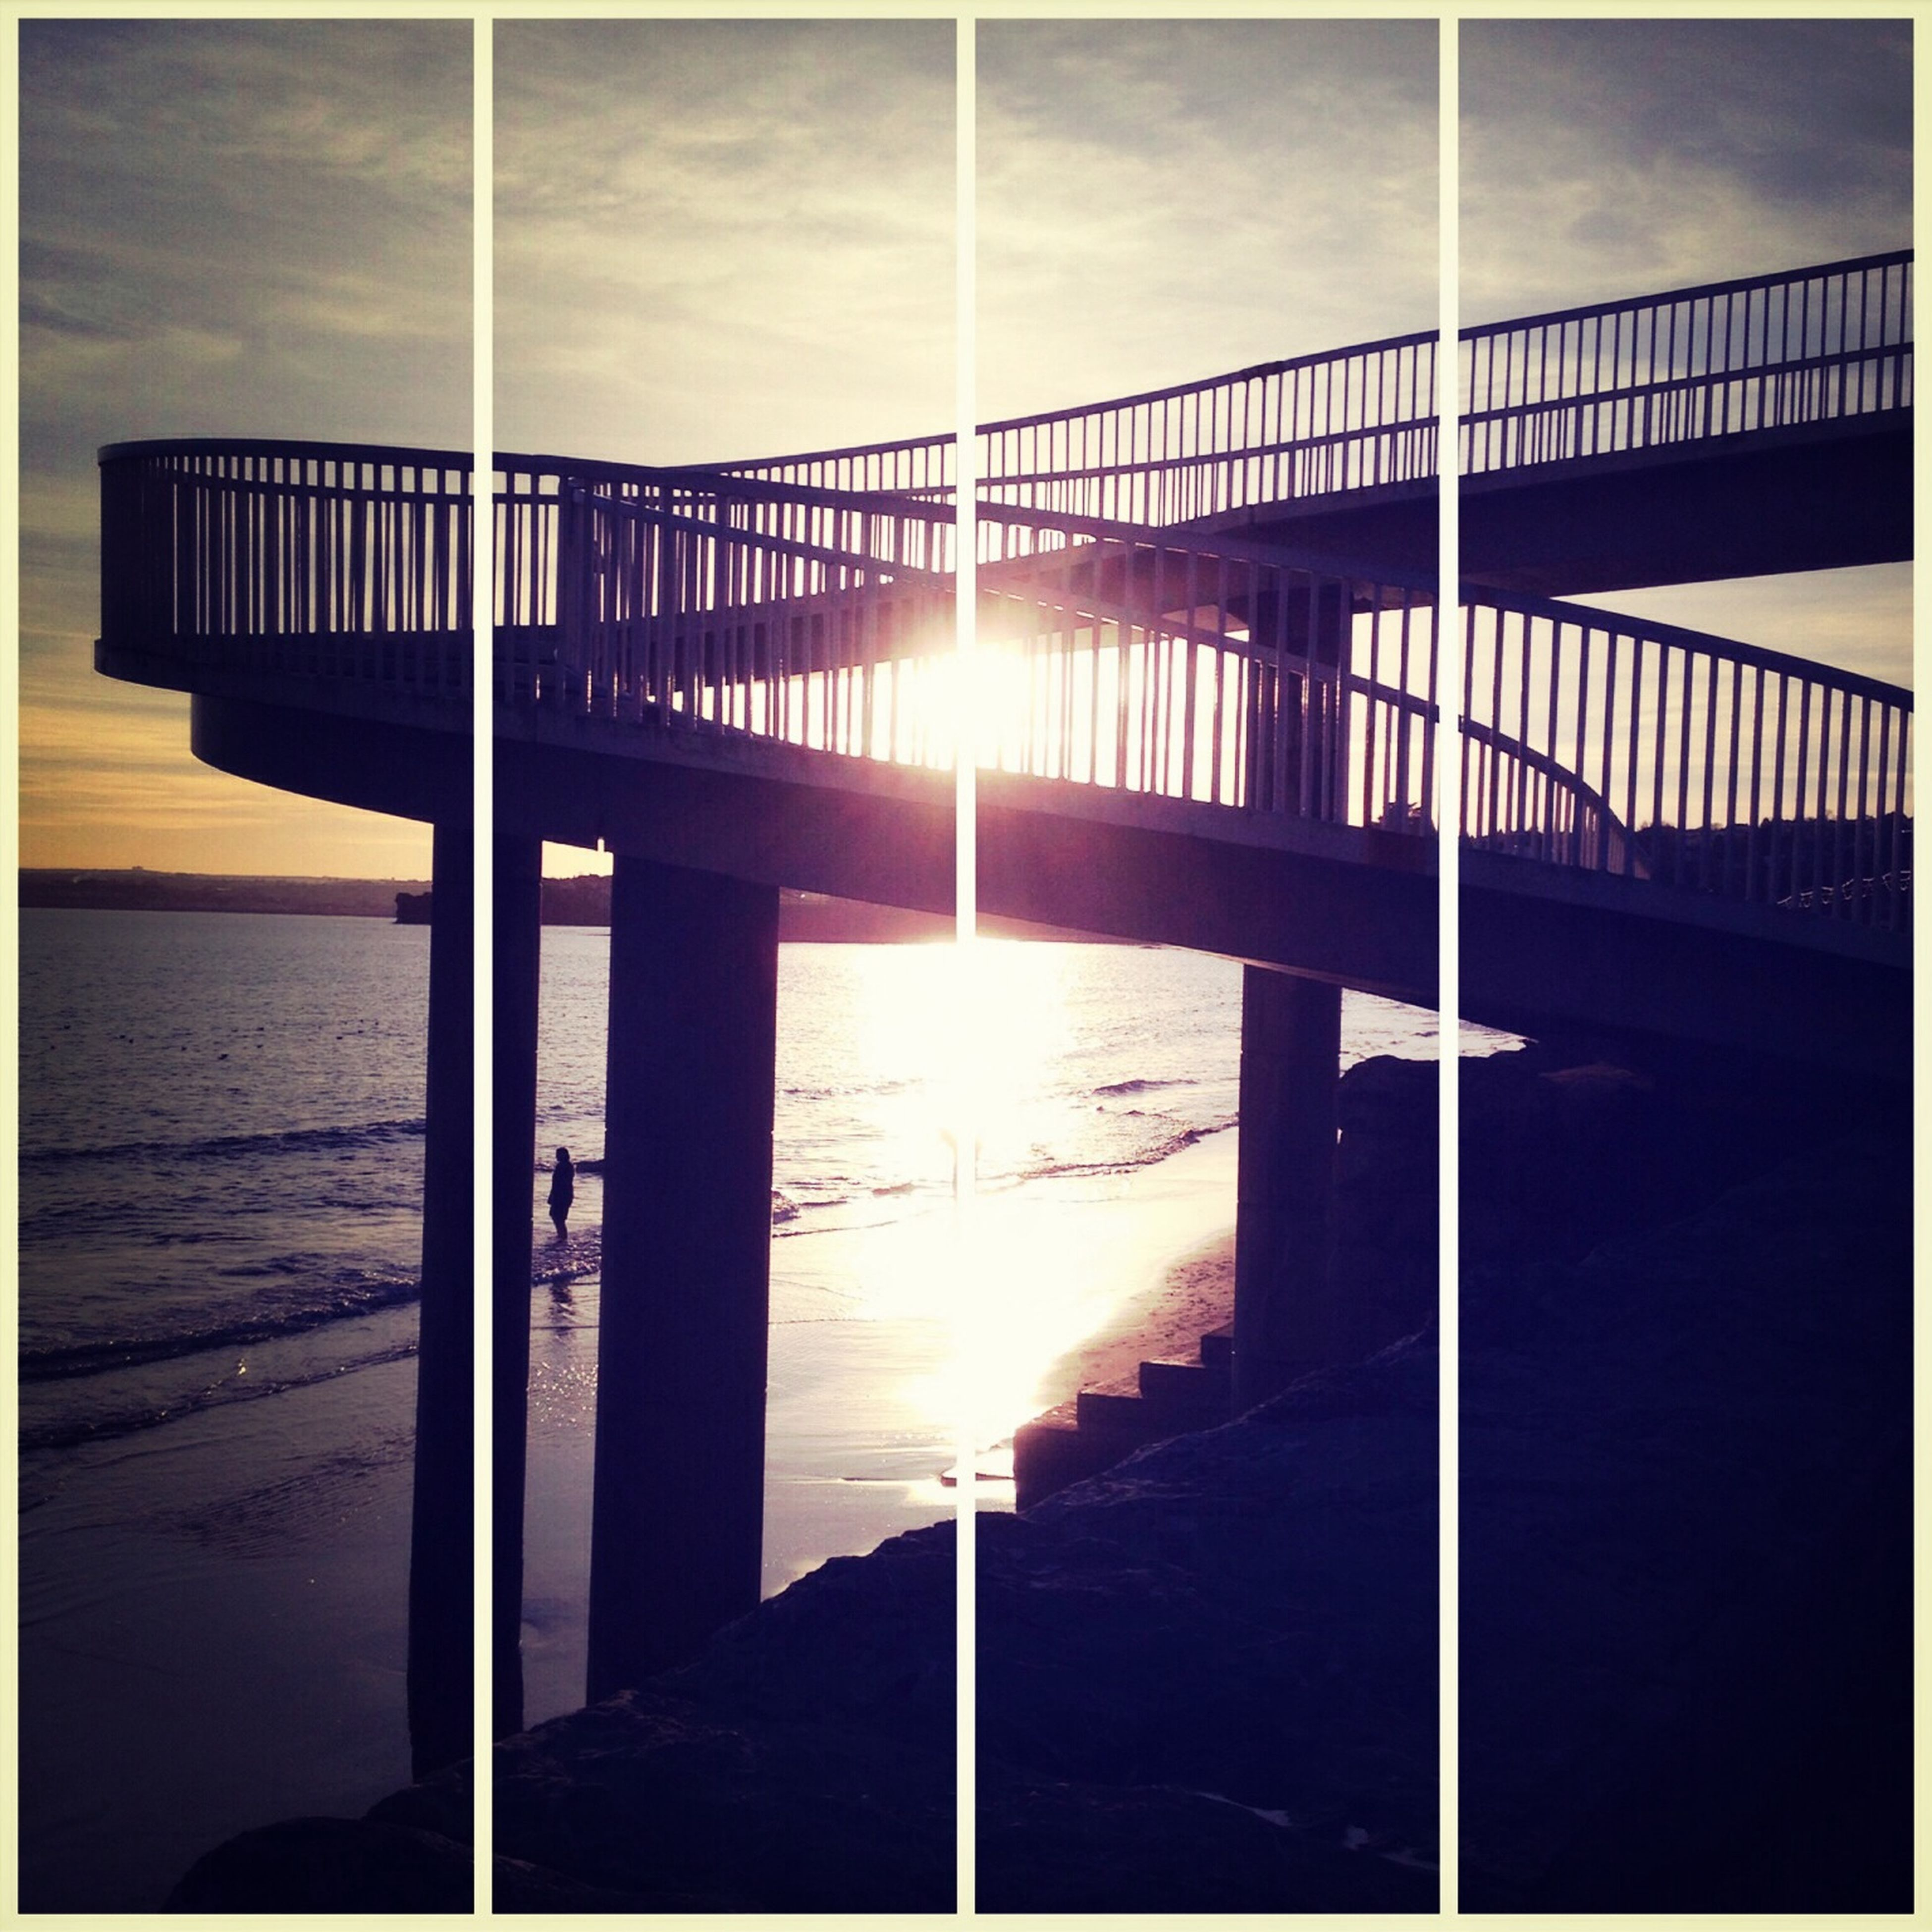 water, sea, built structure, sun, sunset, sunlight, transfer print, architecture, railing, sky, reflection, auto post production filter, sunbeam, pier, silhouette, nature, horizon over water, tranquility, beach, cloud - sky